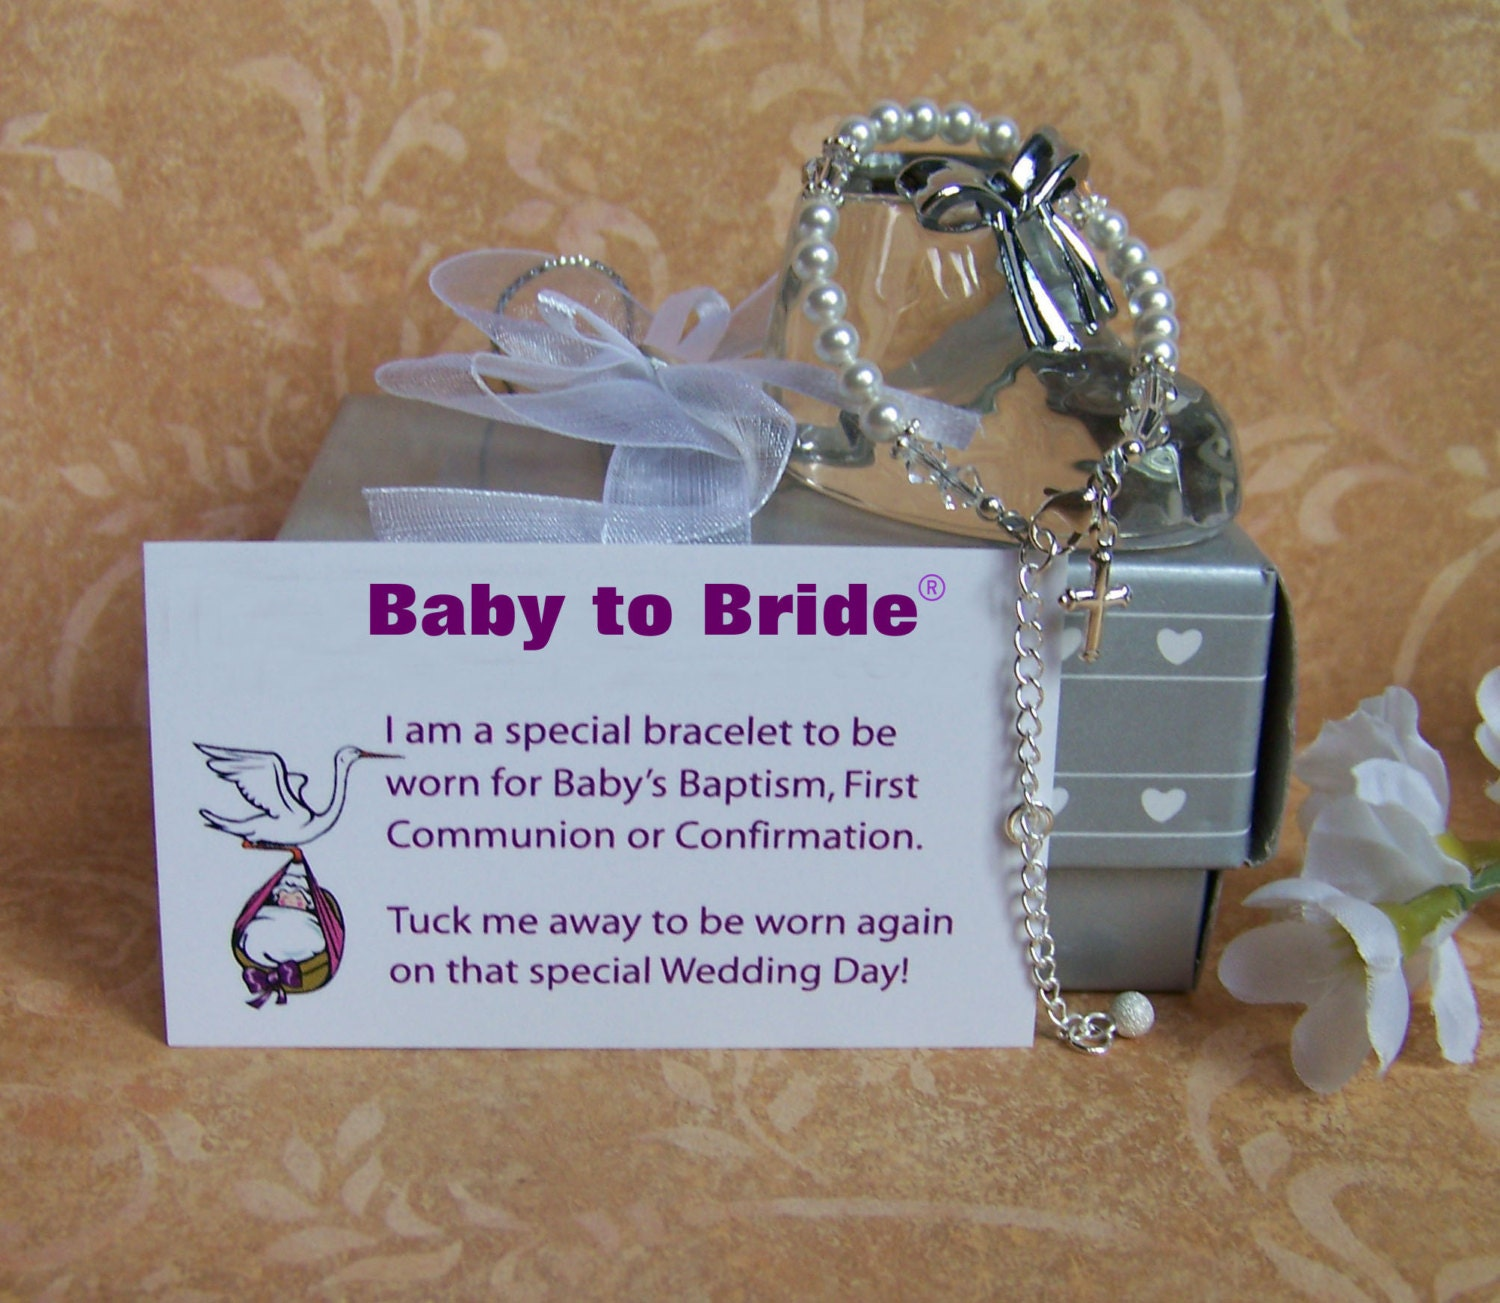 Wedding gift away ideas for baby